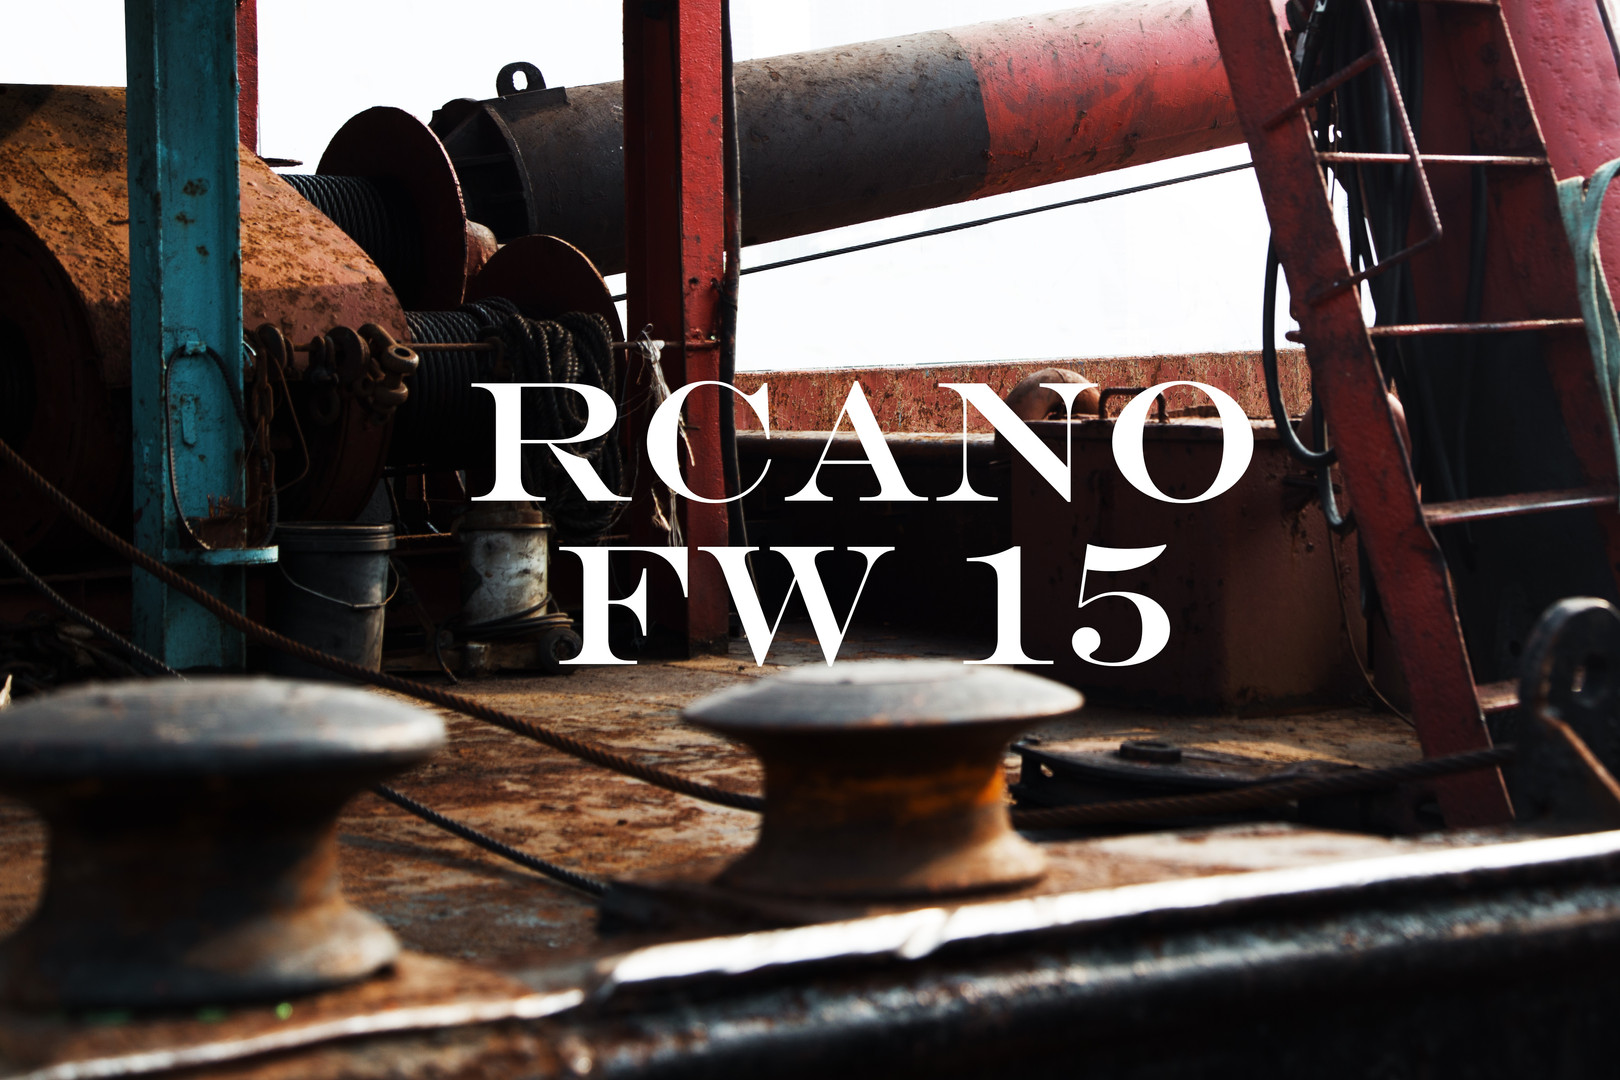 RCANO FW15-1 HIGH RES LOGO.jpg